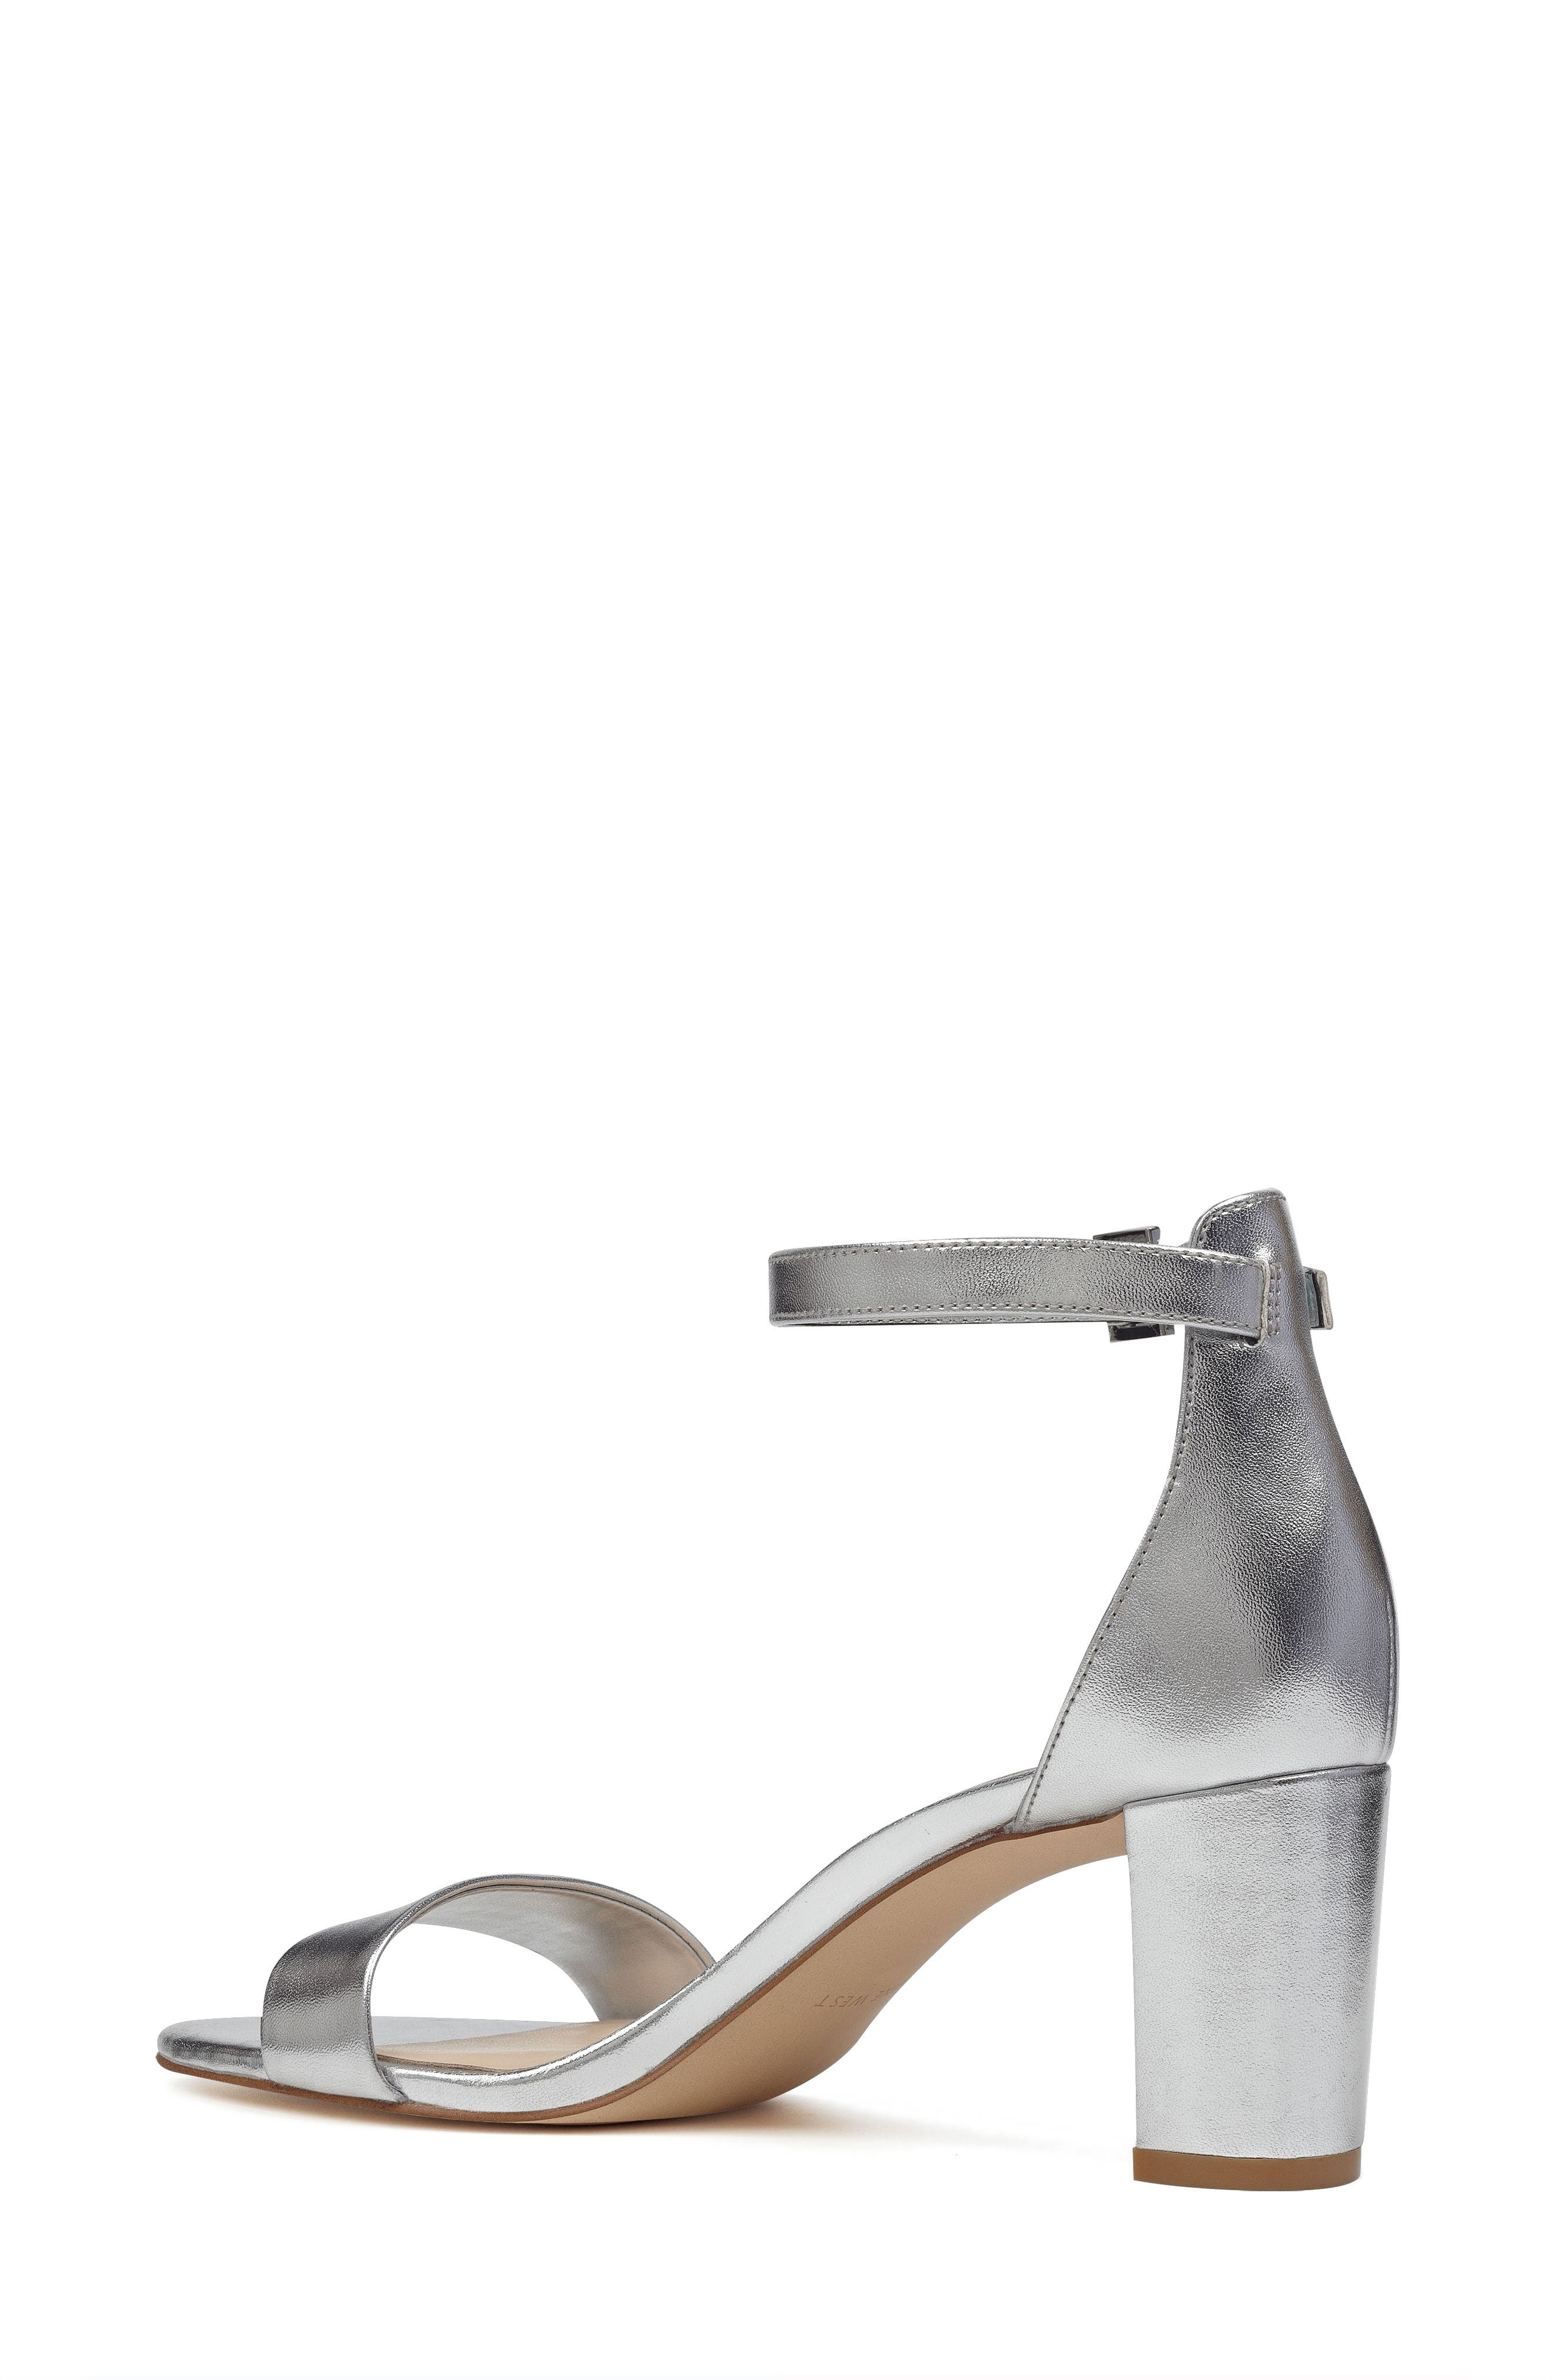 Pruce Ankle Strap Sandal,                             Alternate thumbnail 2, color,                             Silver Fabric